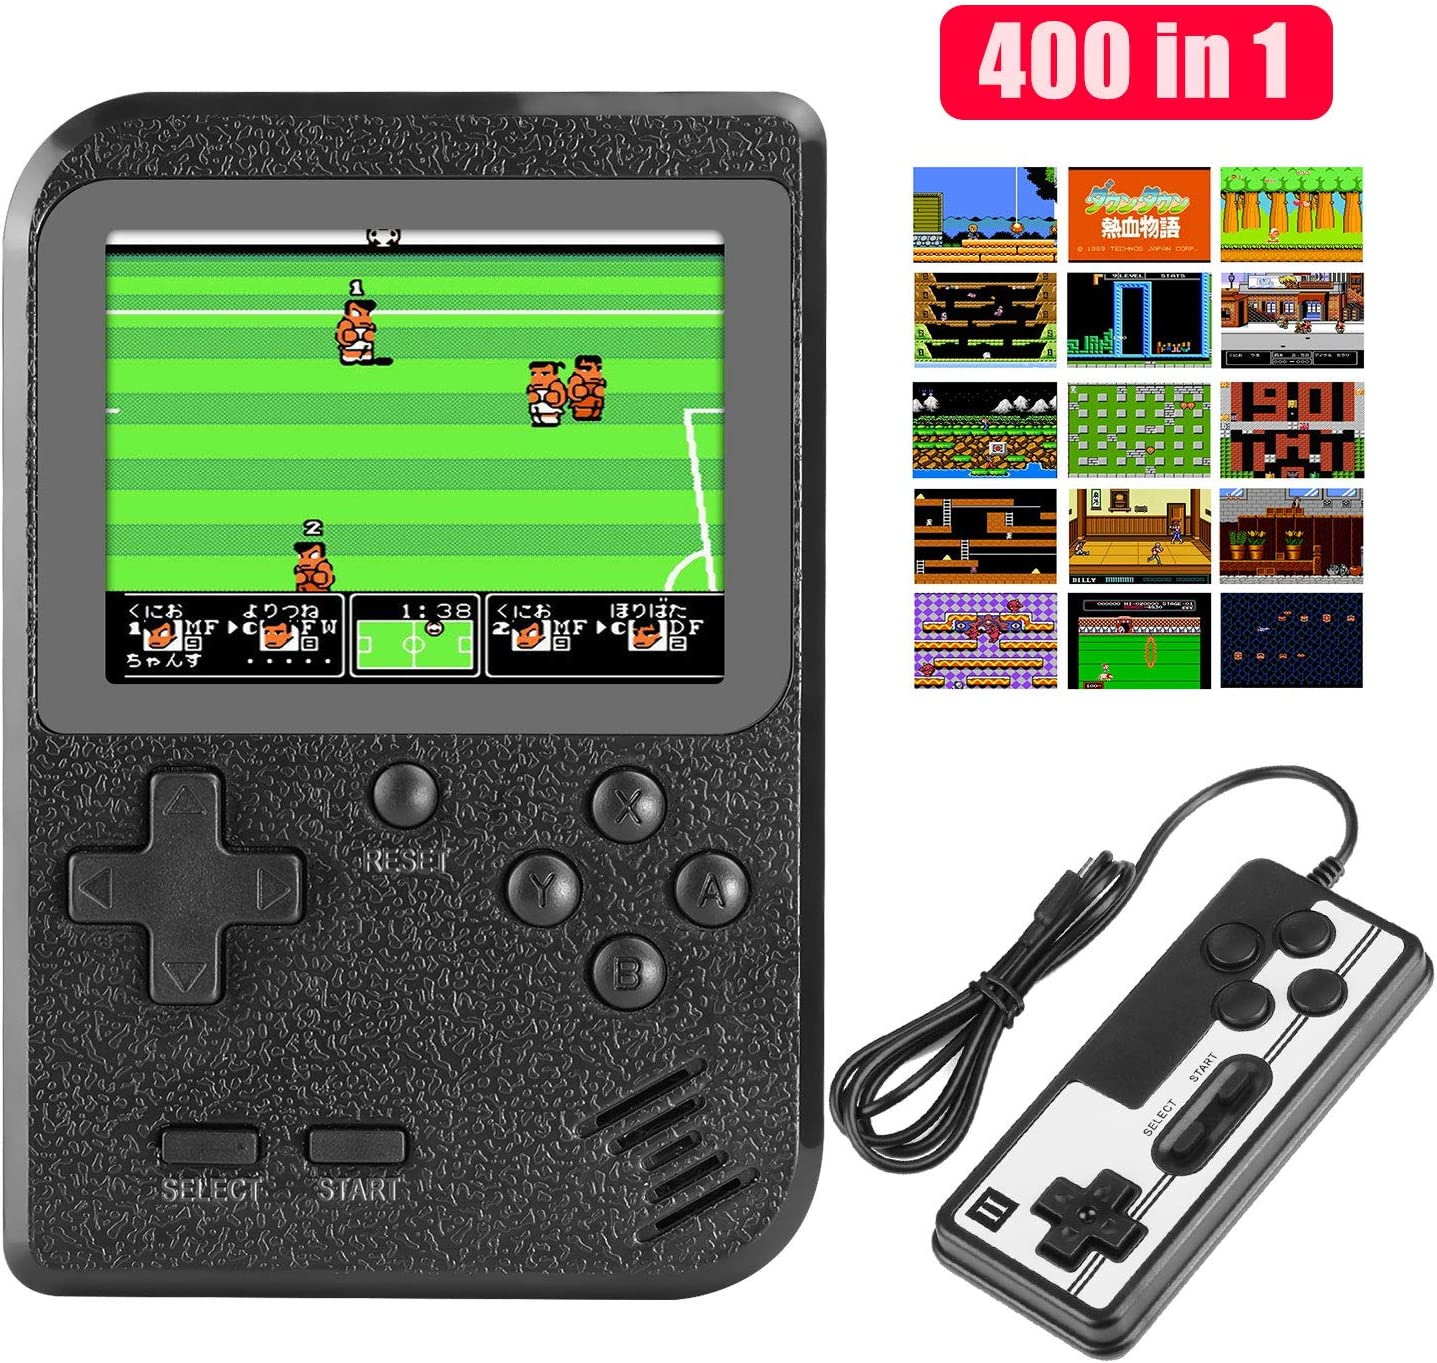 Birthday for Boys Girls Men Rechargeable FC Game Console Support TV Output and Two Players Number-One Handheld Game Console Portable Gameboy with 400 Classic 3 Inch Screen